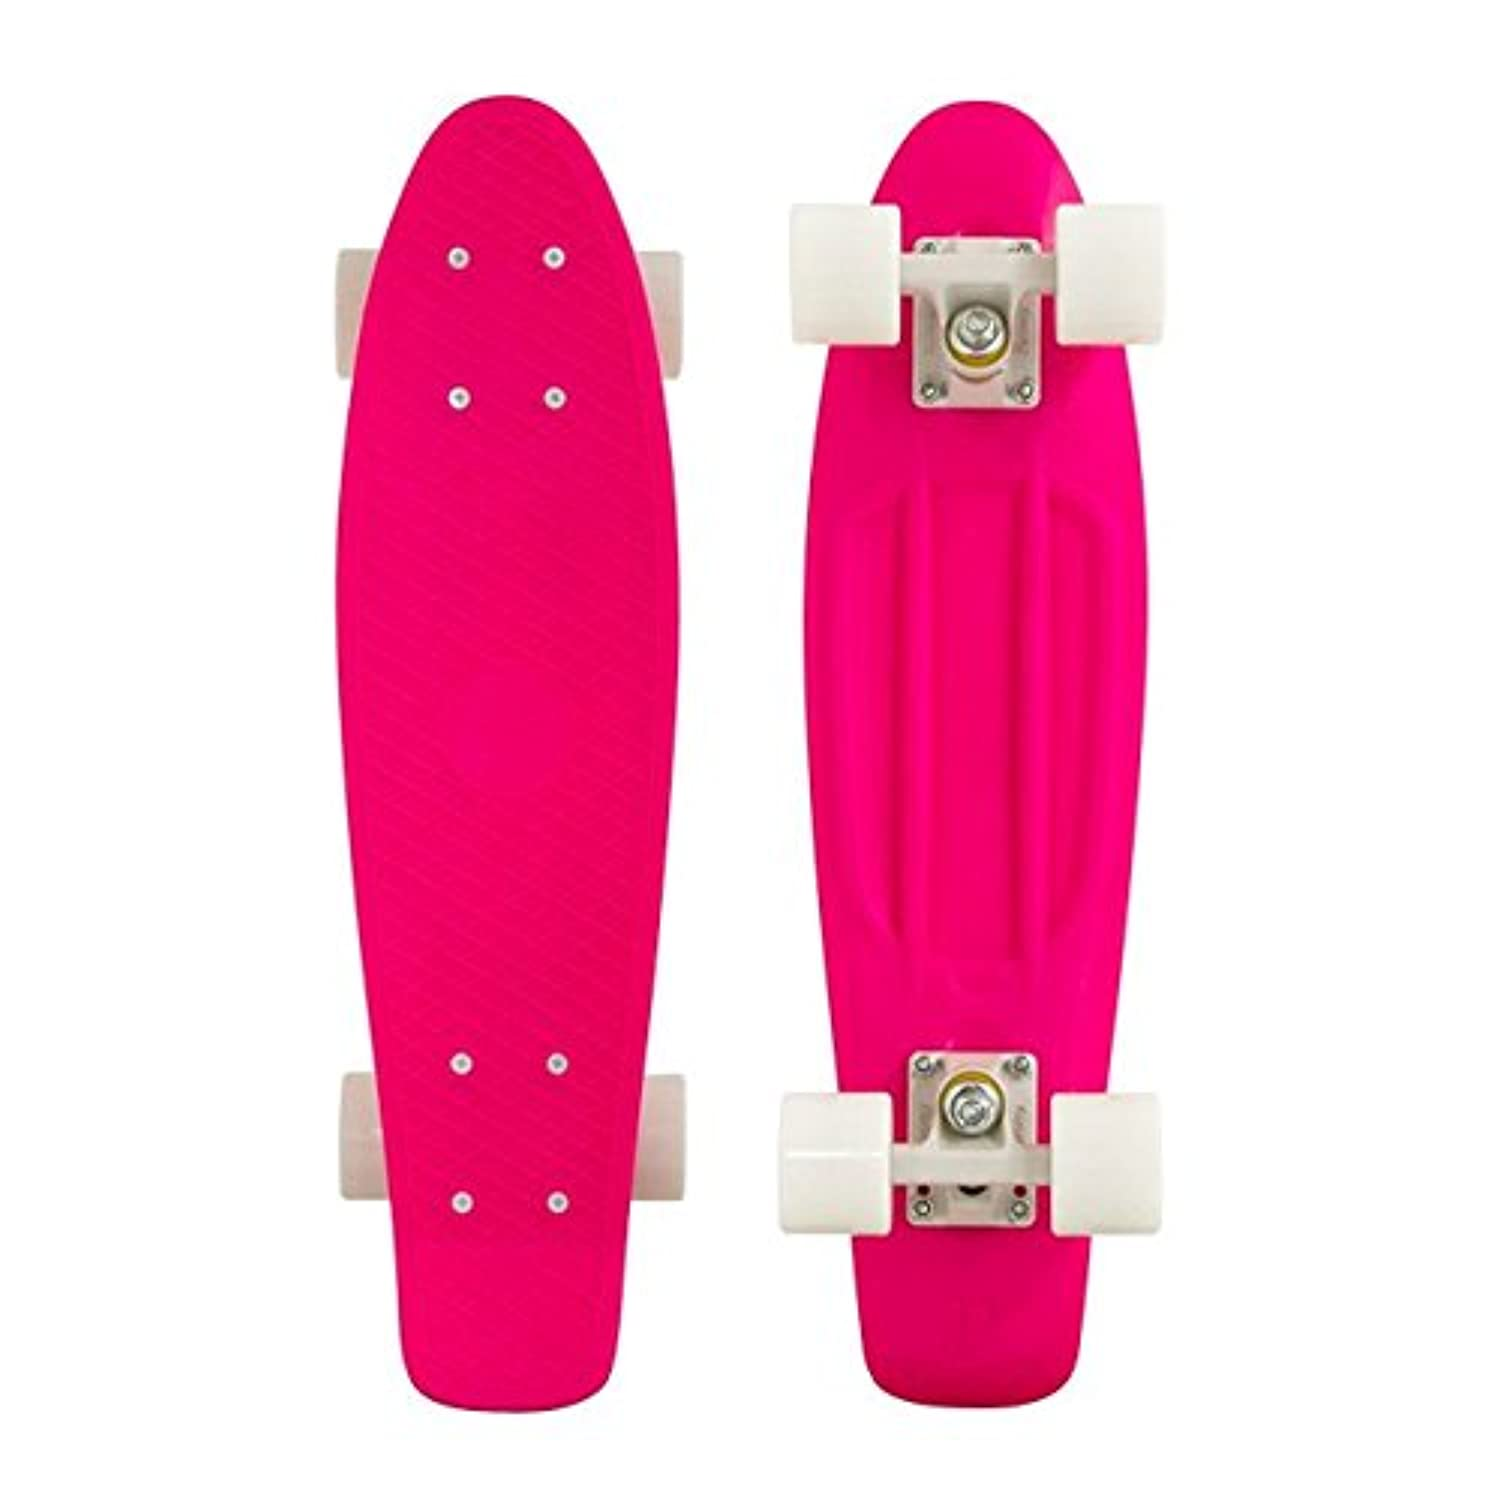 PENNY Skateboard Plastic 22 HOT PINK 2.0 Complete by Penny